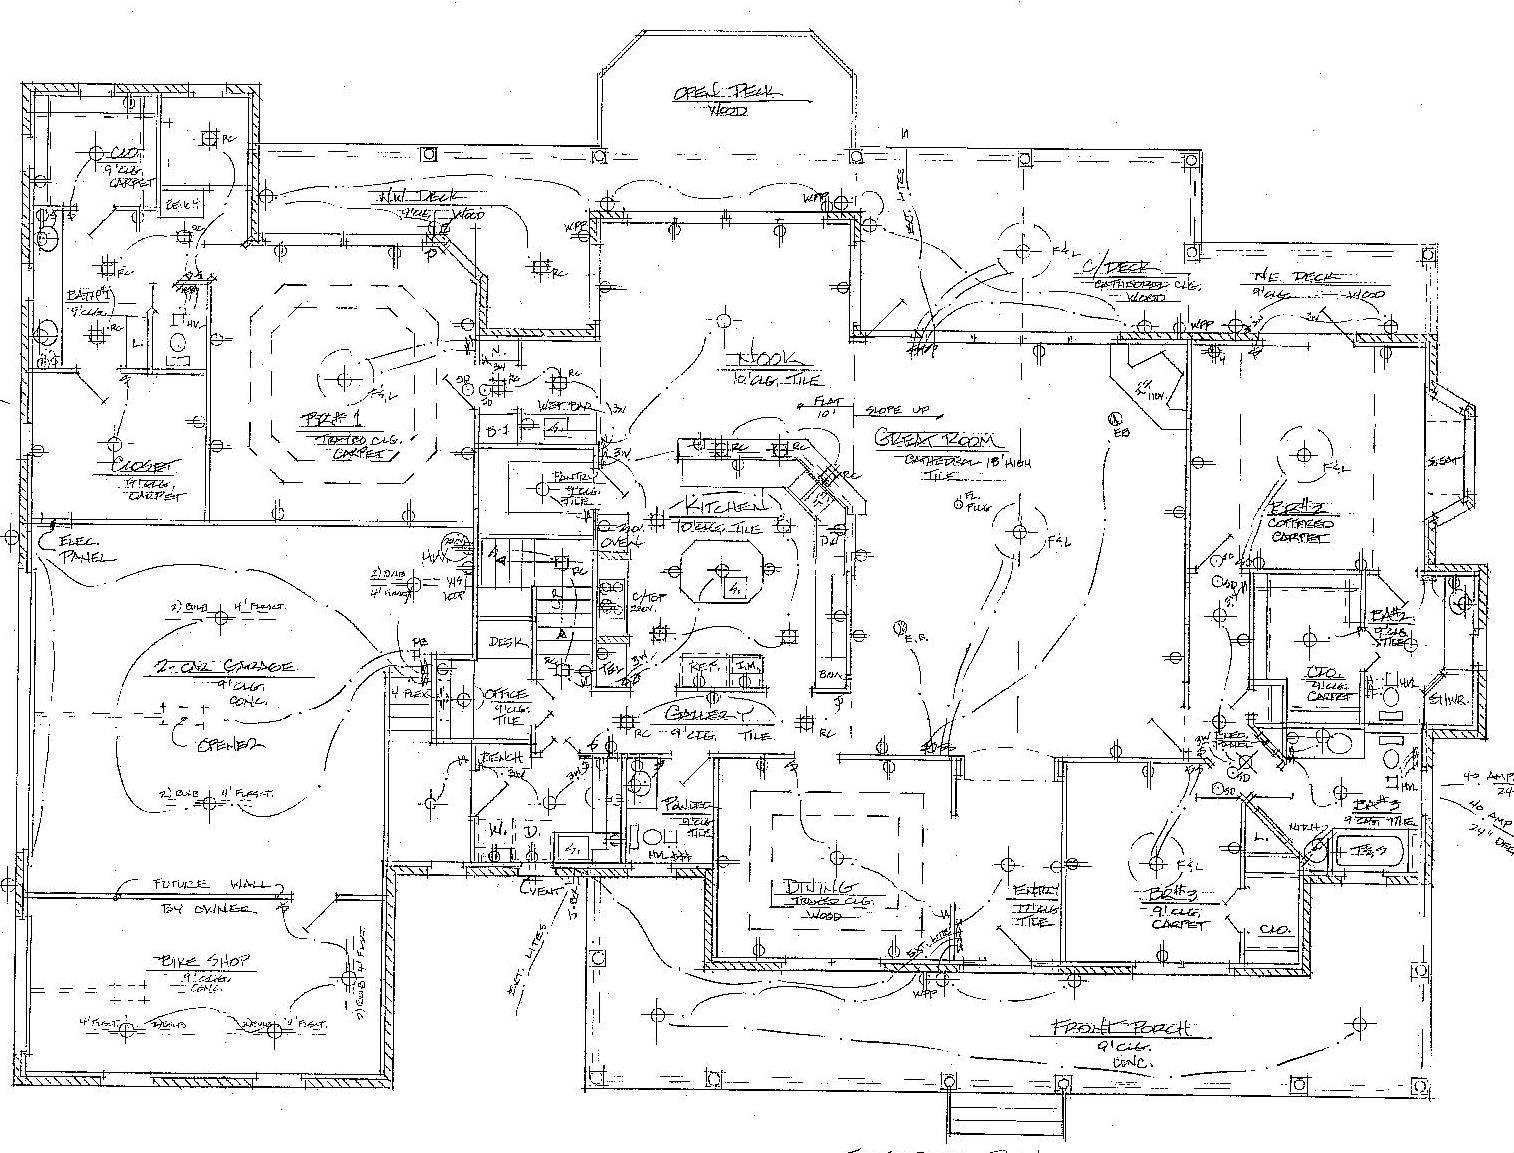 wiring house floor plan house electrical wiring floor plan besides restaurant house  house electrical wiring floor plan